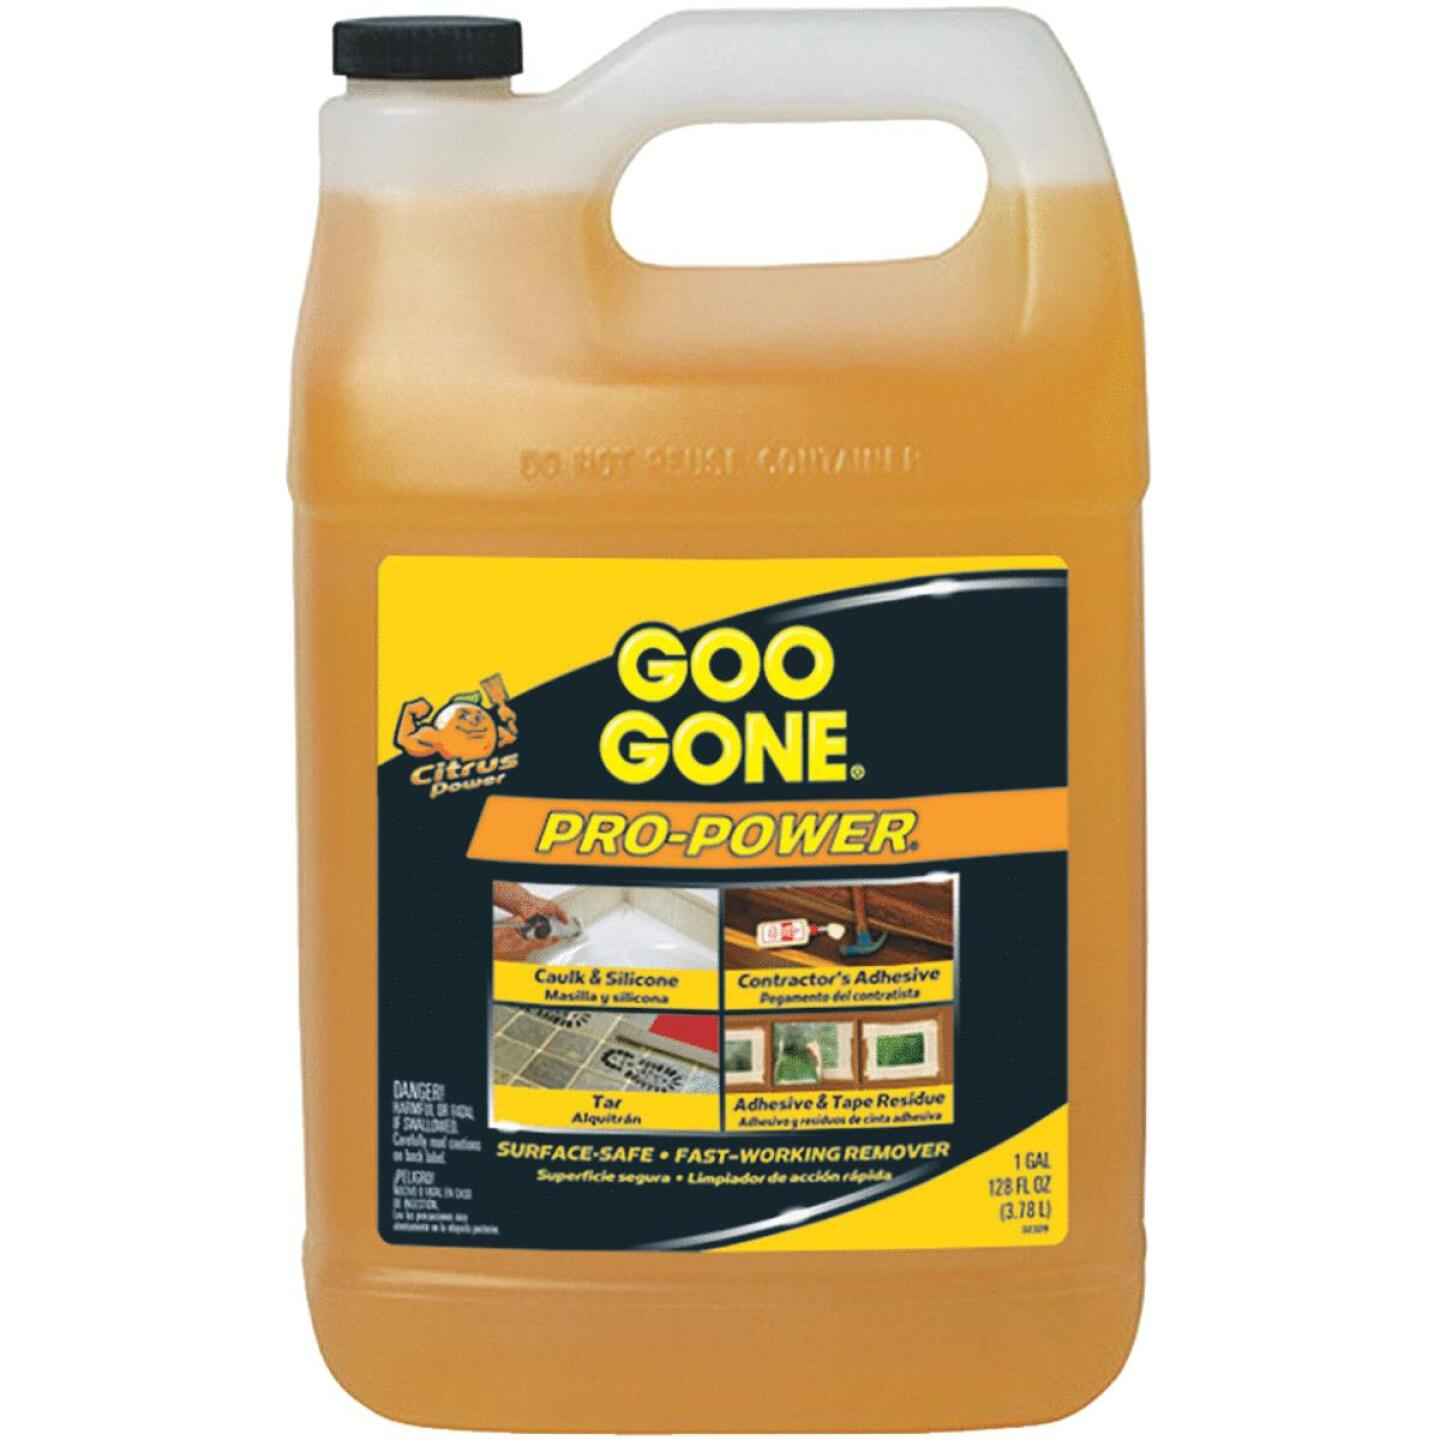 Goo Gone 1 Gal. Pro-Power Adhesive Remover Image 52